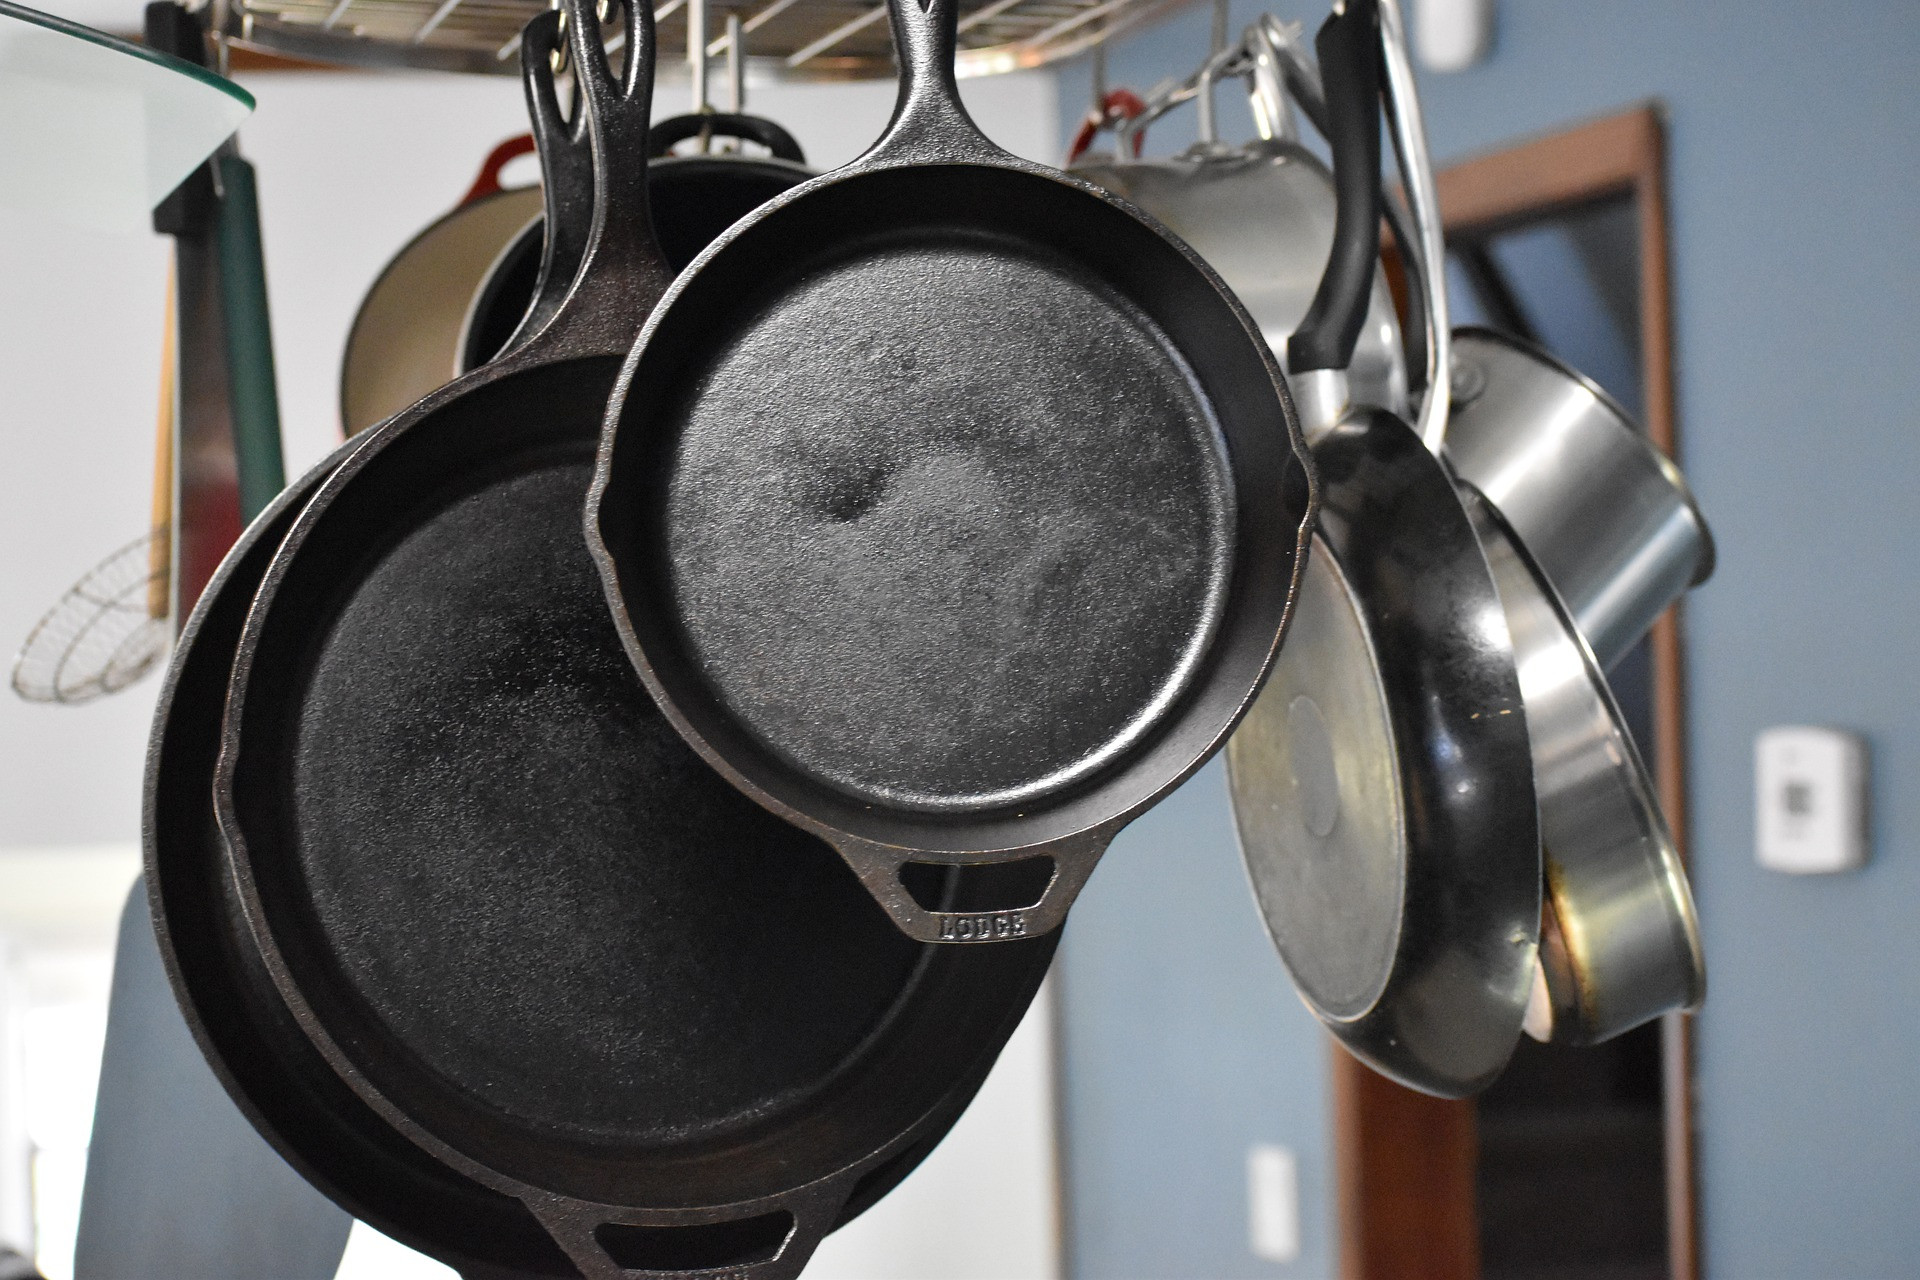 Cast Iron Cooking - Caring for Your Cast Iron Skillet